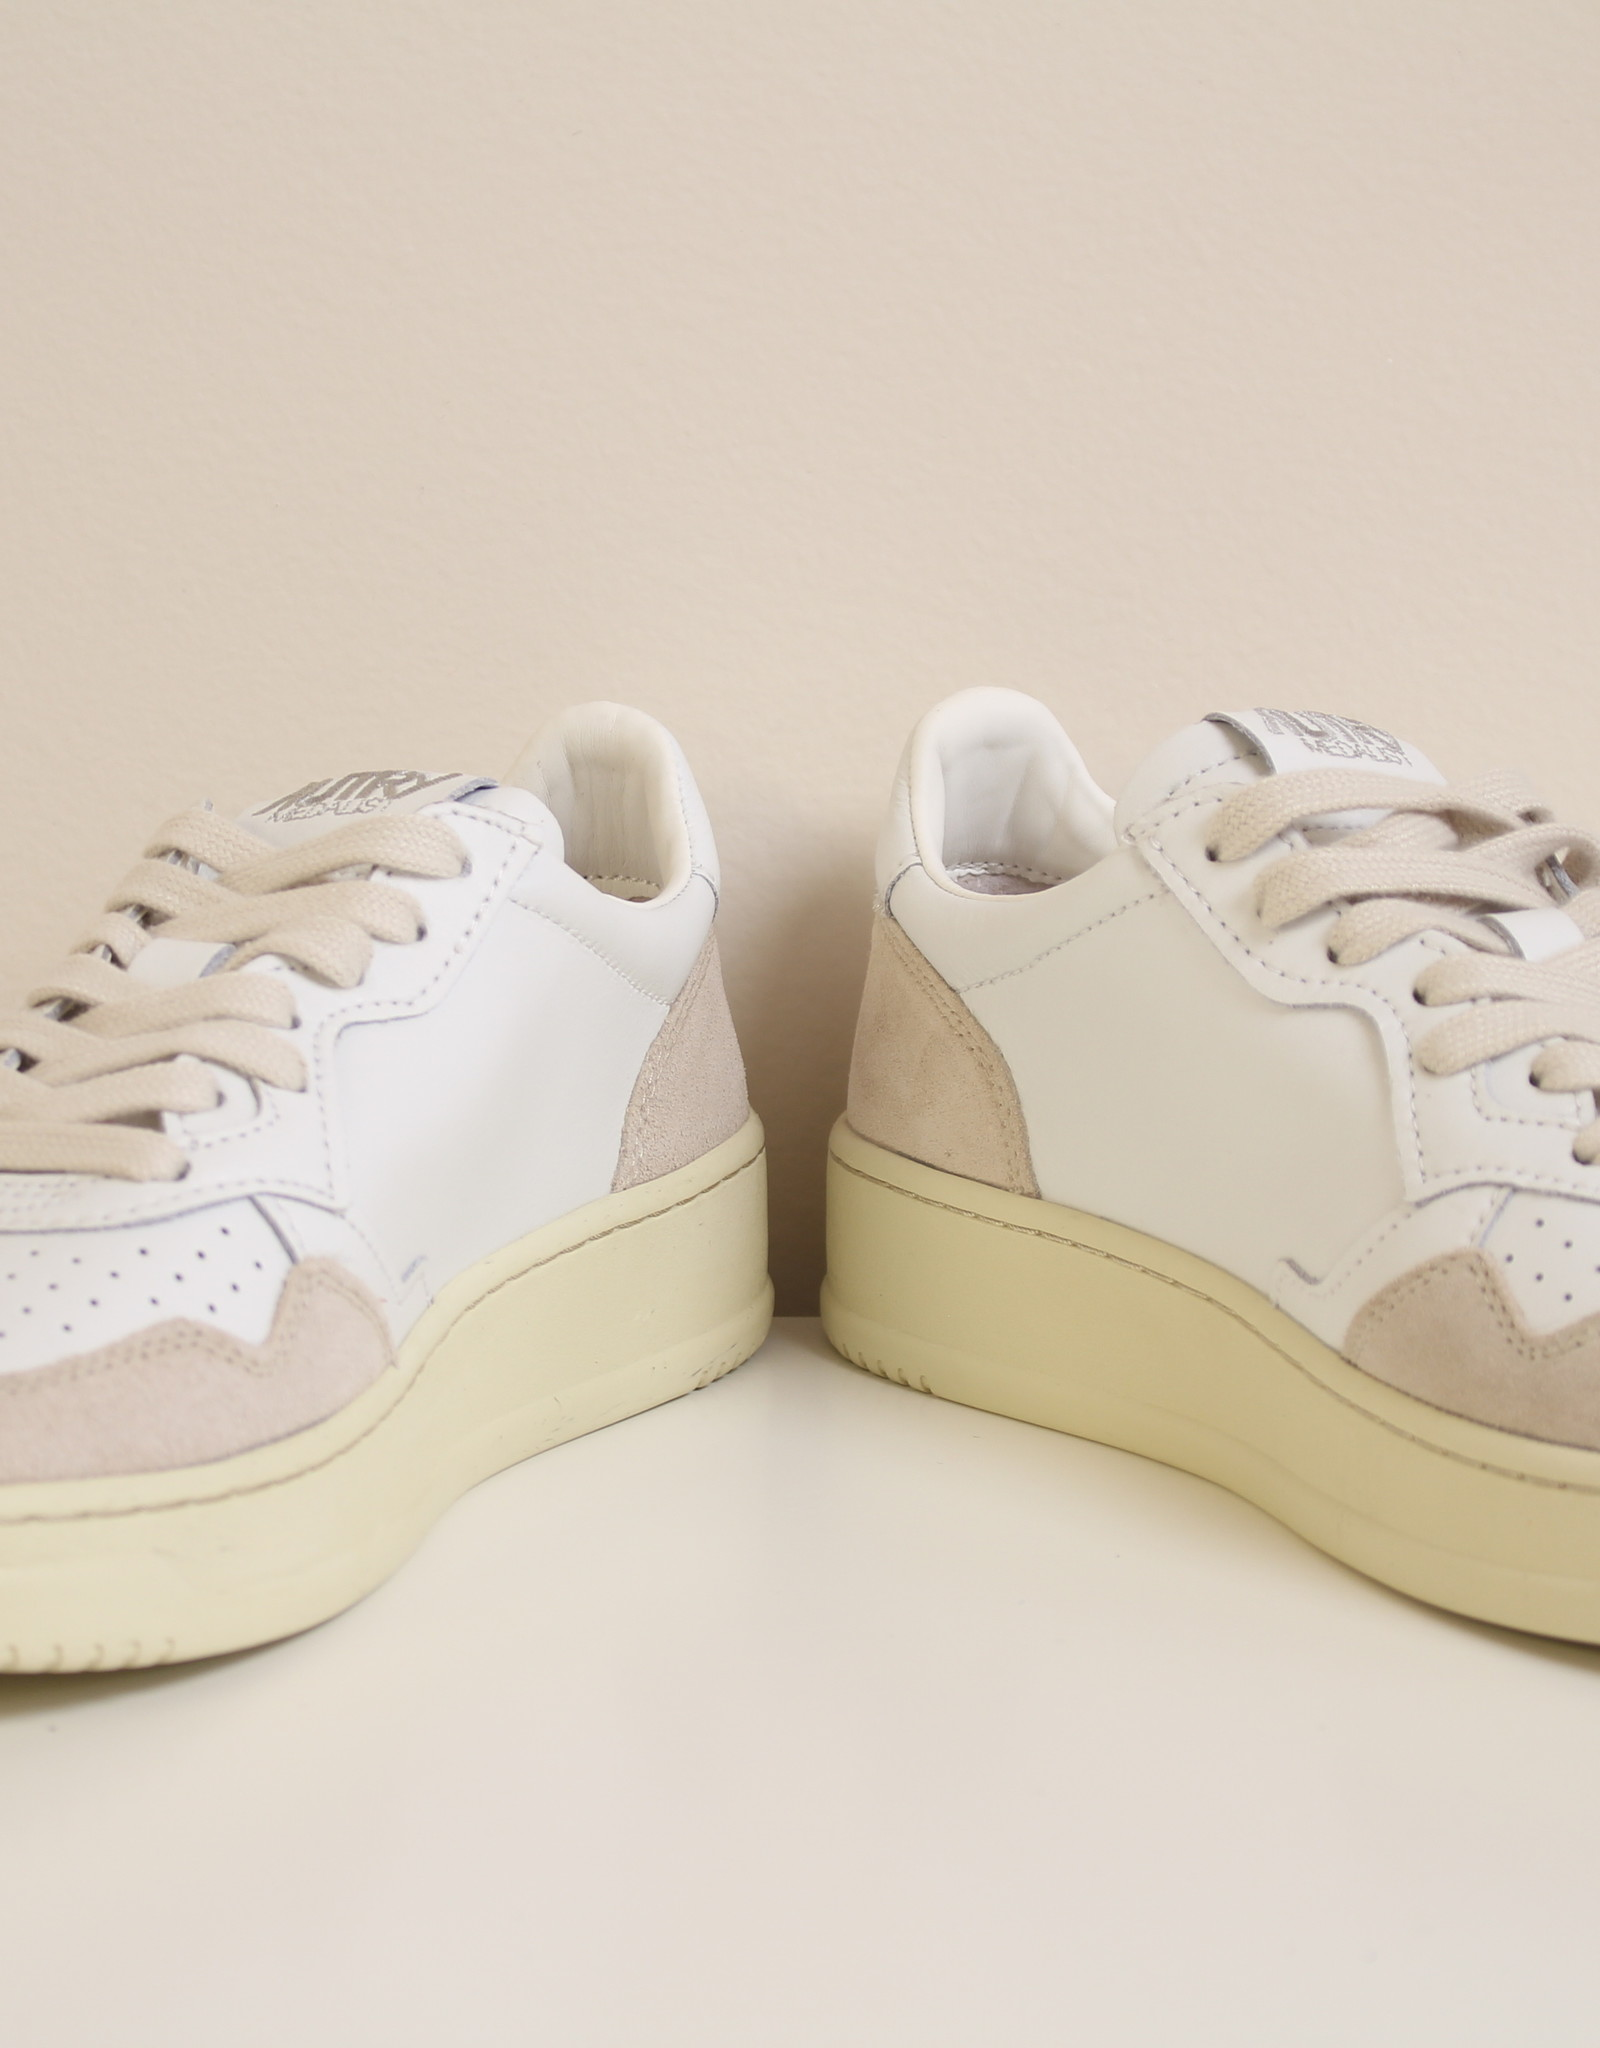 Autry AULWLS33 leather/suede white/white